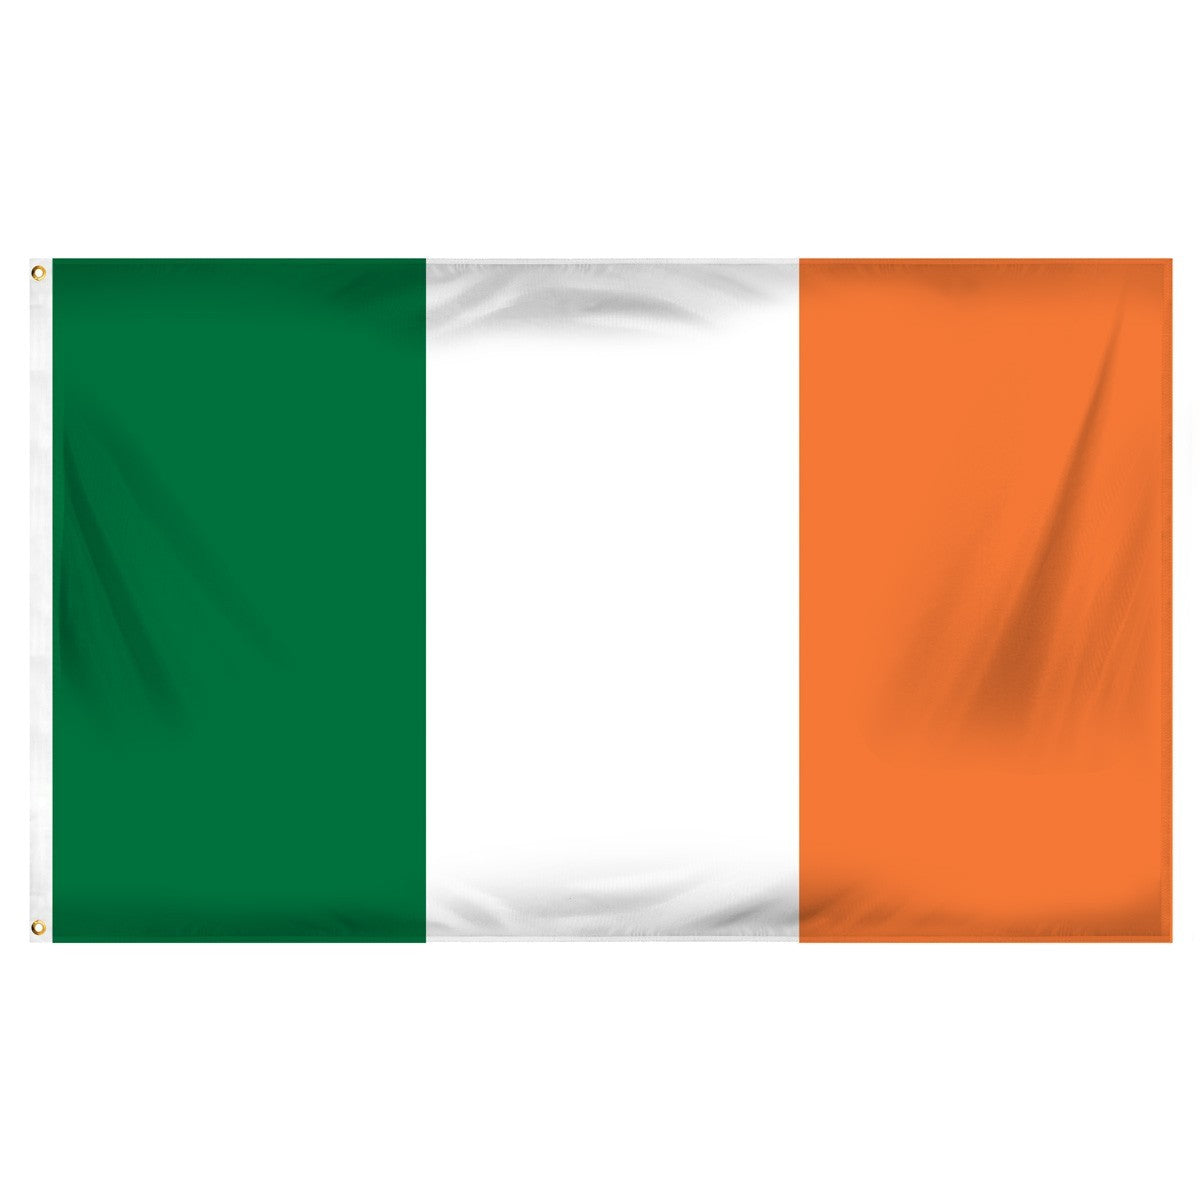 Ireland Flags For Sale Indoor and Outdoor 1-800 Flags